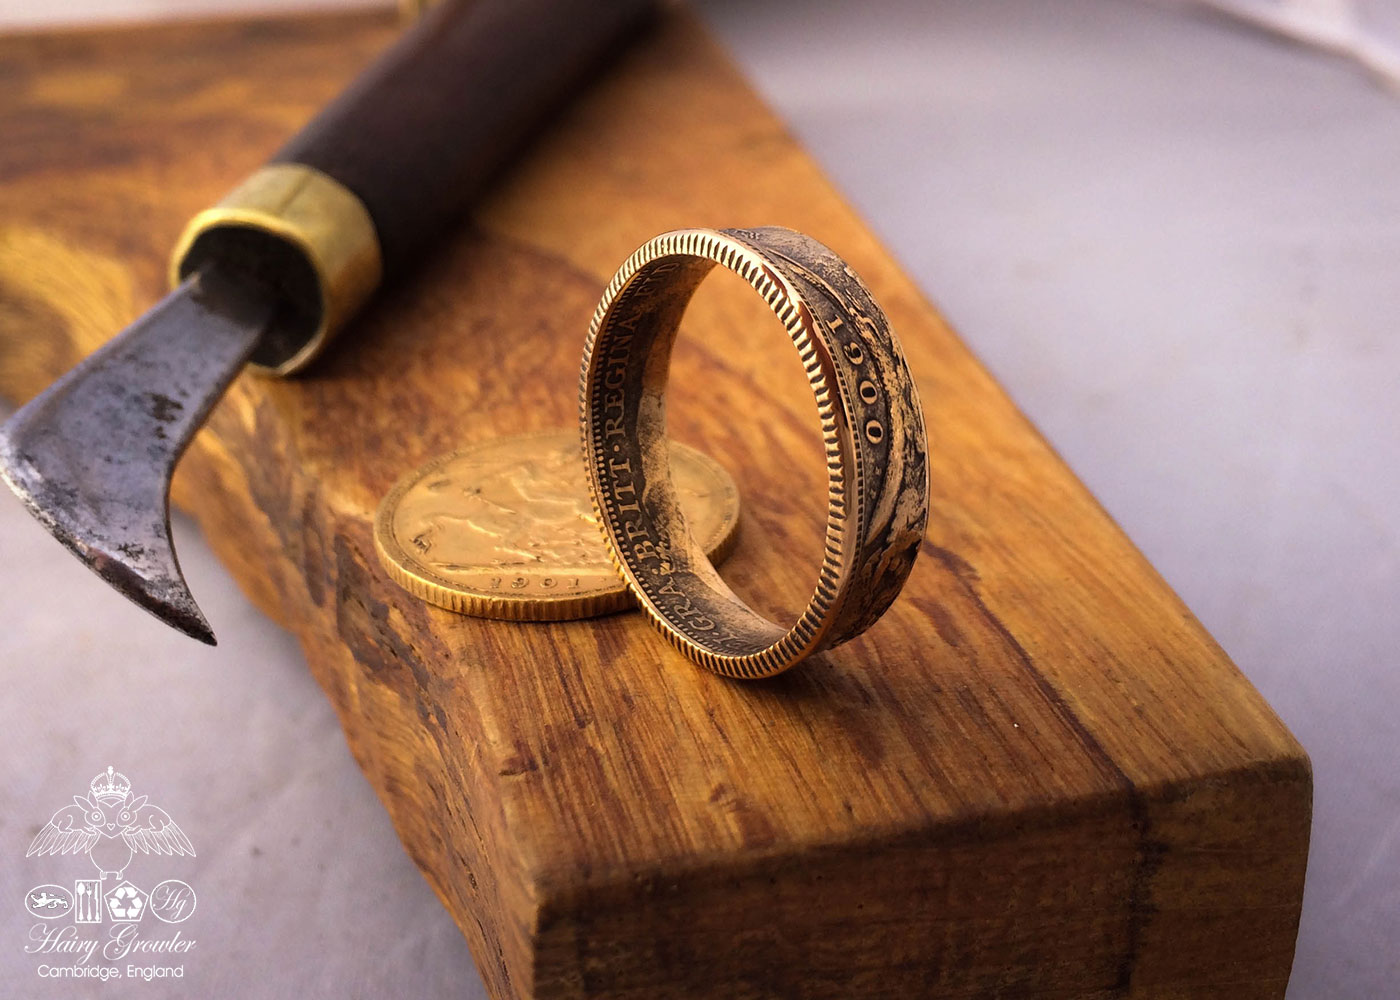 Handcrafted and recycled 22ct gold coin wedding rings